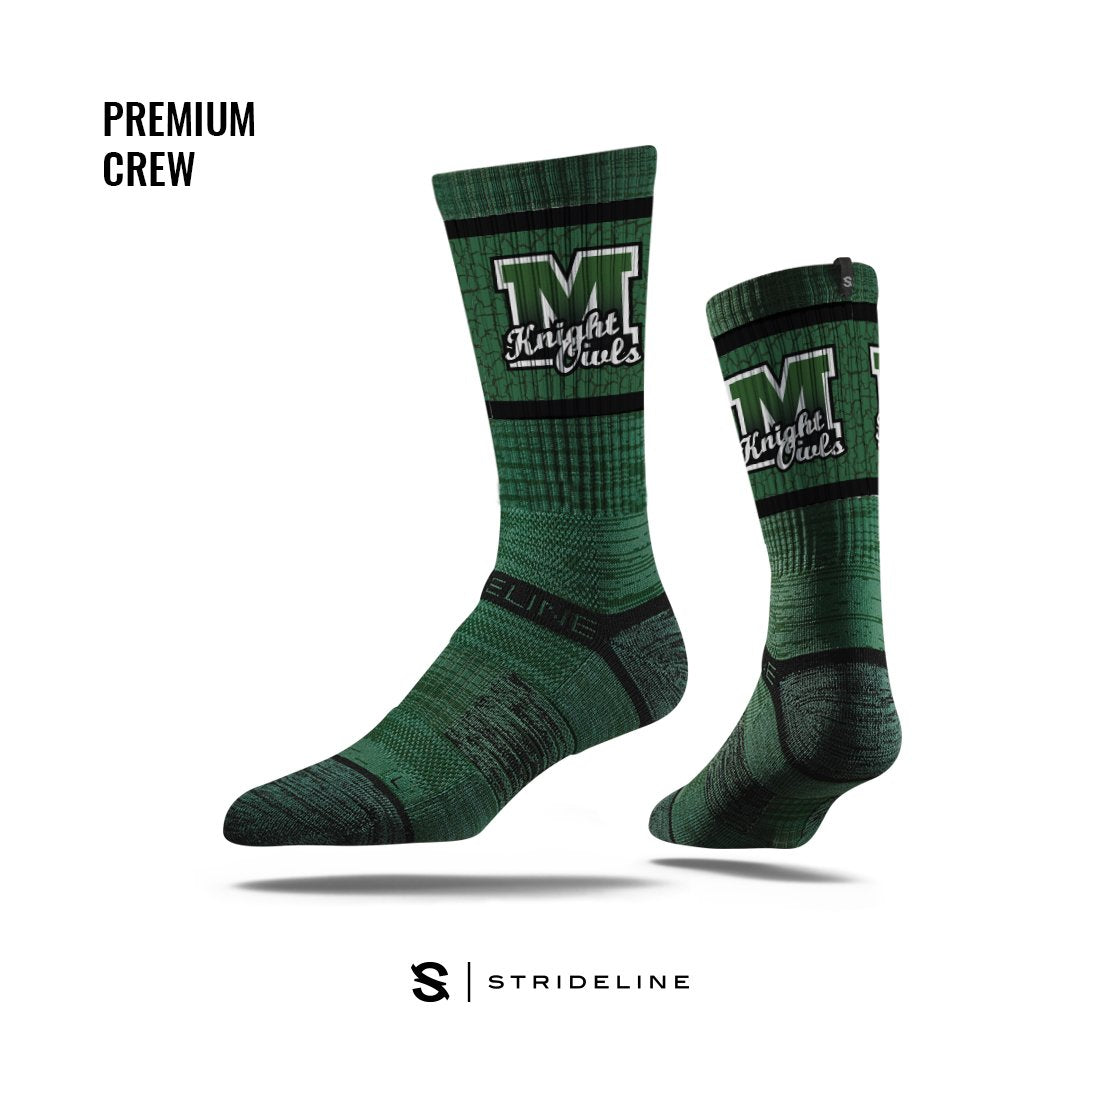 Mary M Knight School Apparel | Socks | Premium